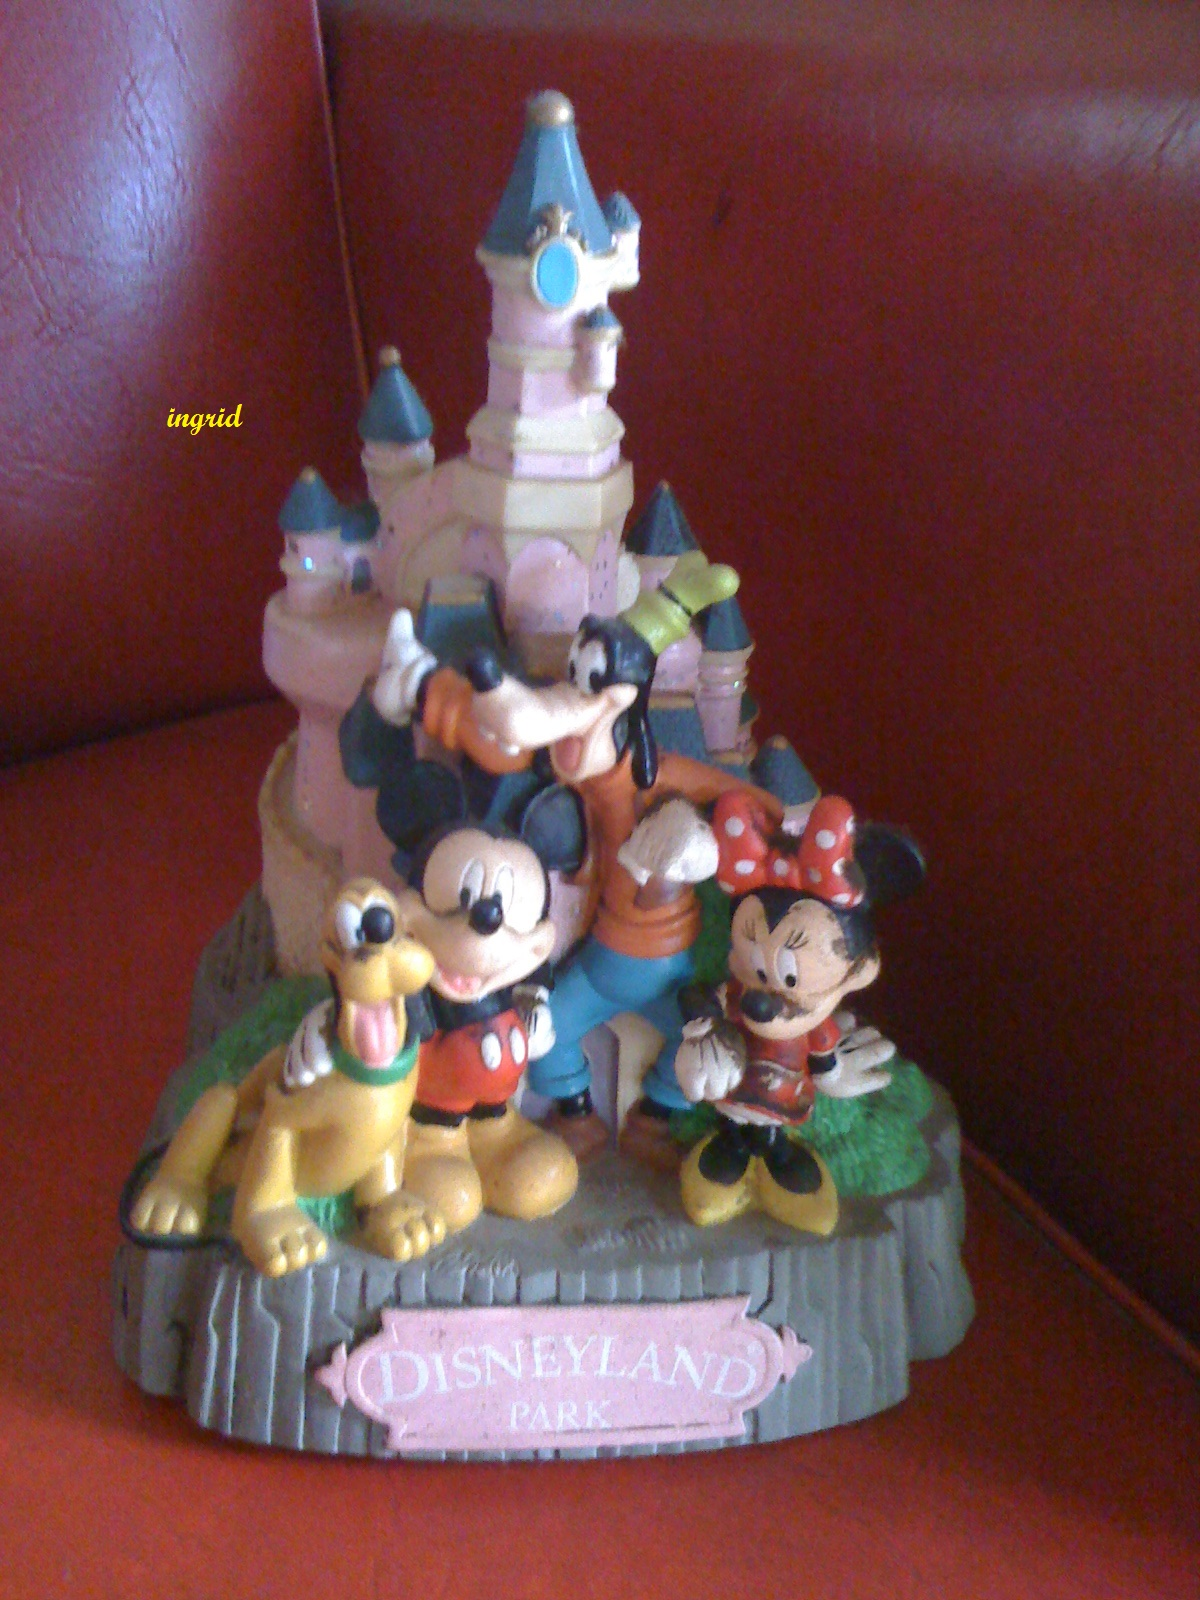 a figurine of walt Disney characters from our cabinet